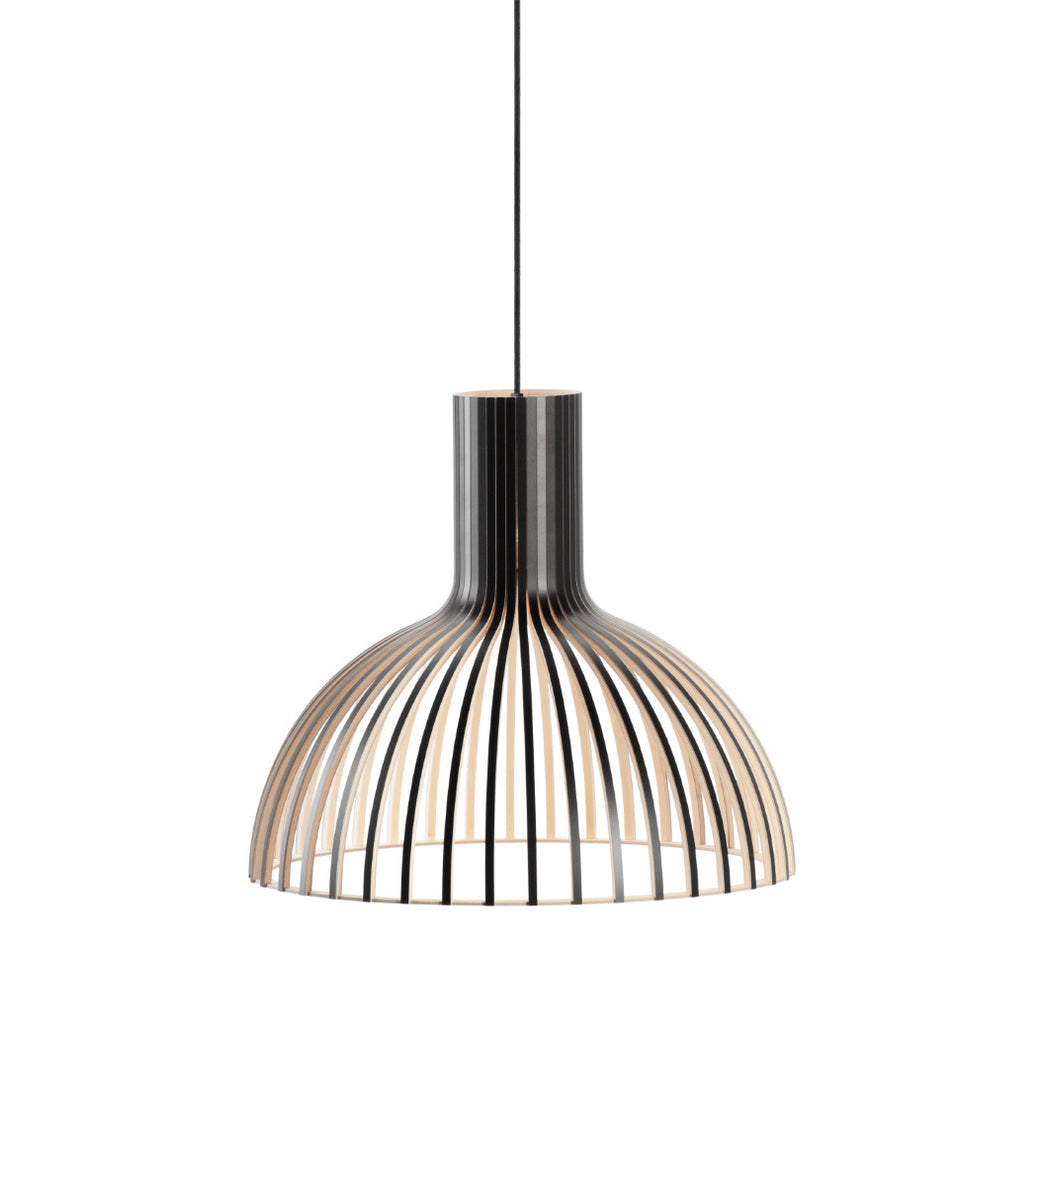 Black High end ceiling pendant Victo 4251 1